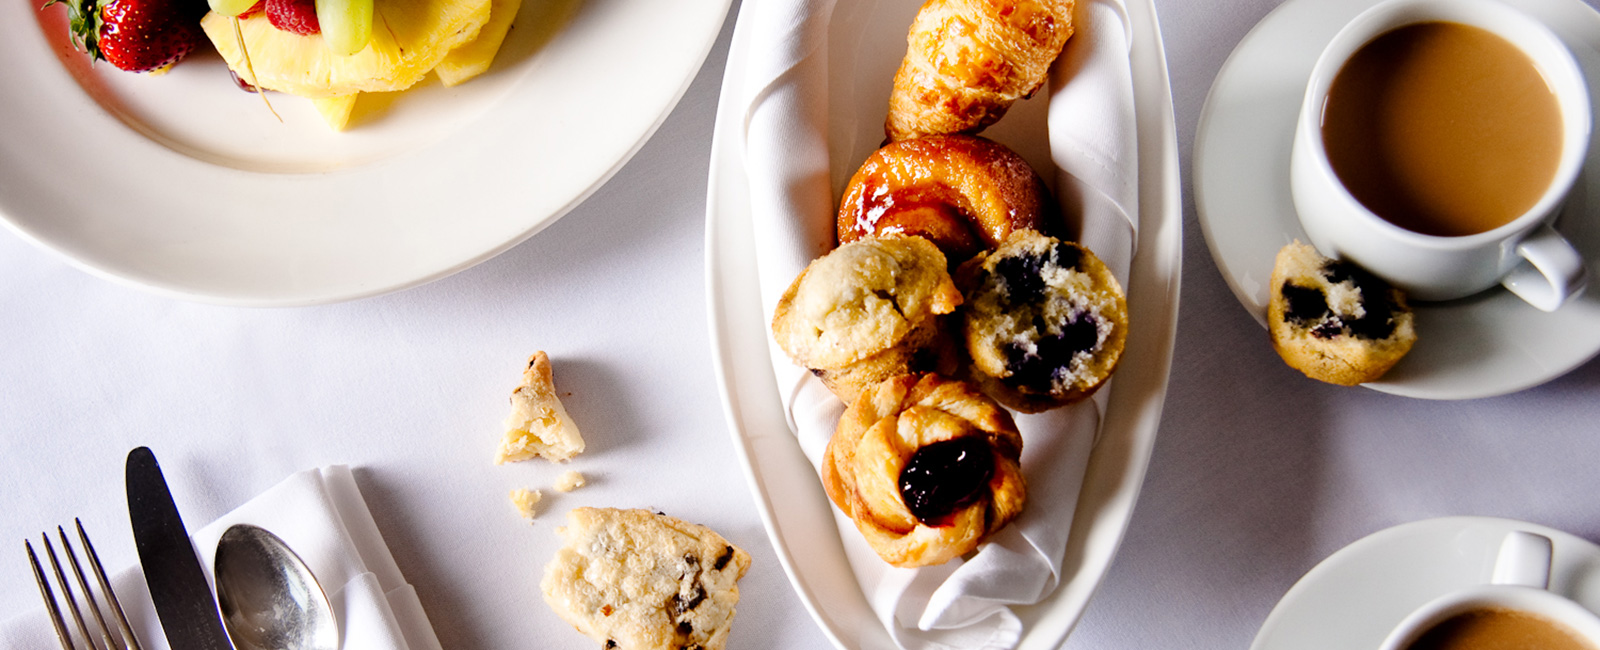 Photograph of some of breakfast menu options to include; muffins, pastries, coffee, and fresh fruit.